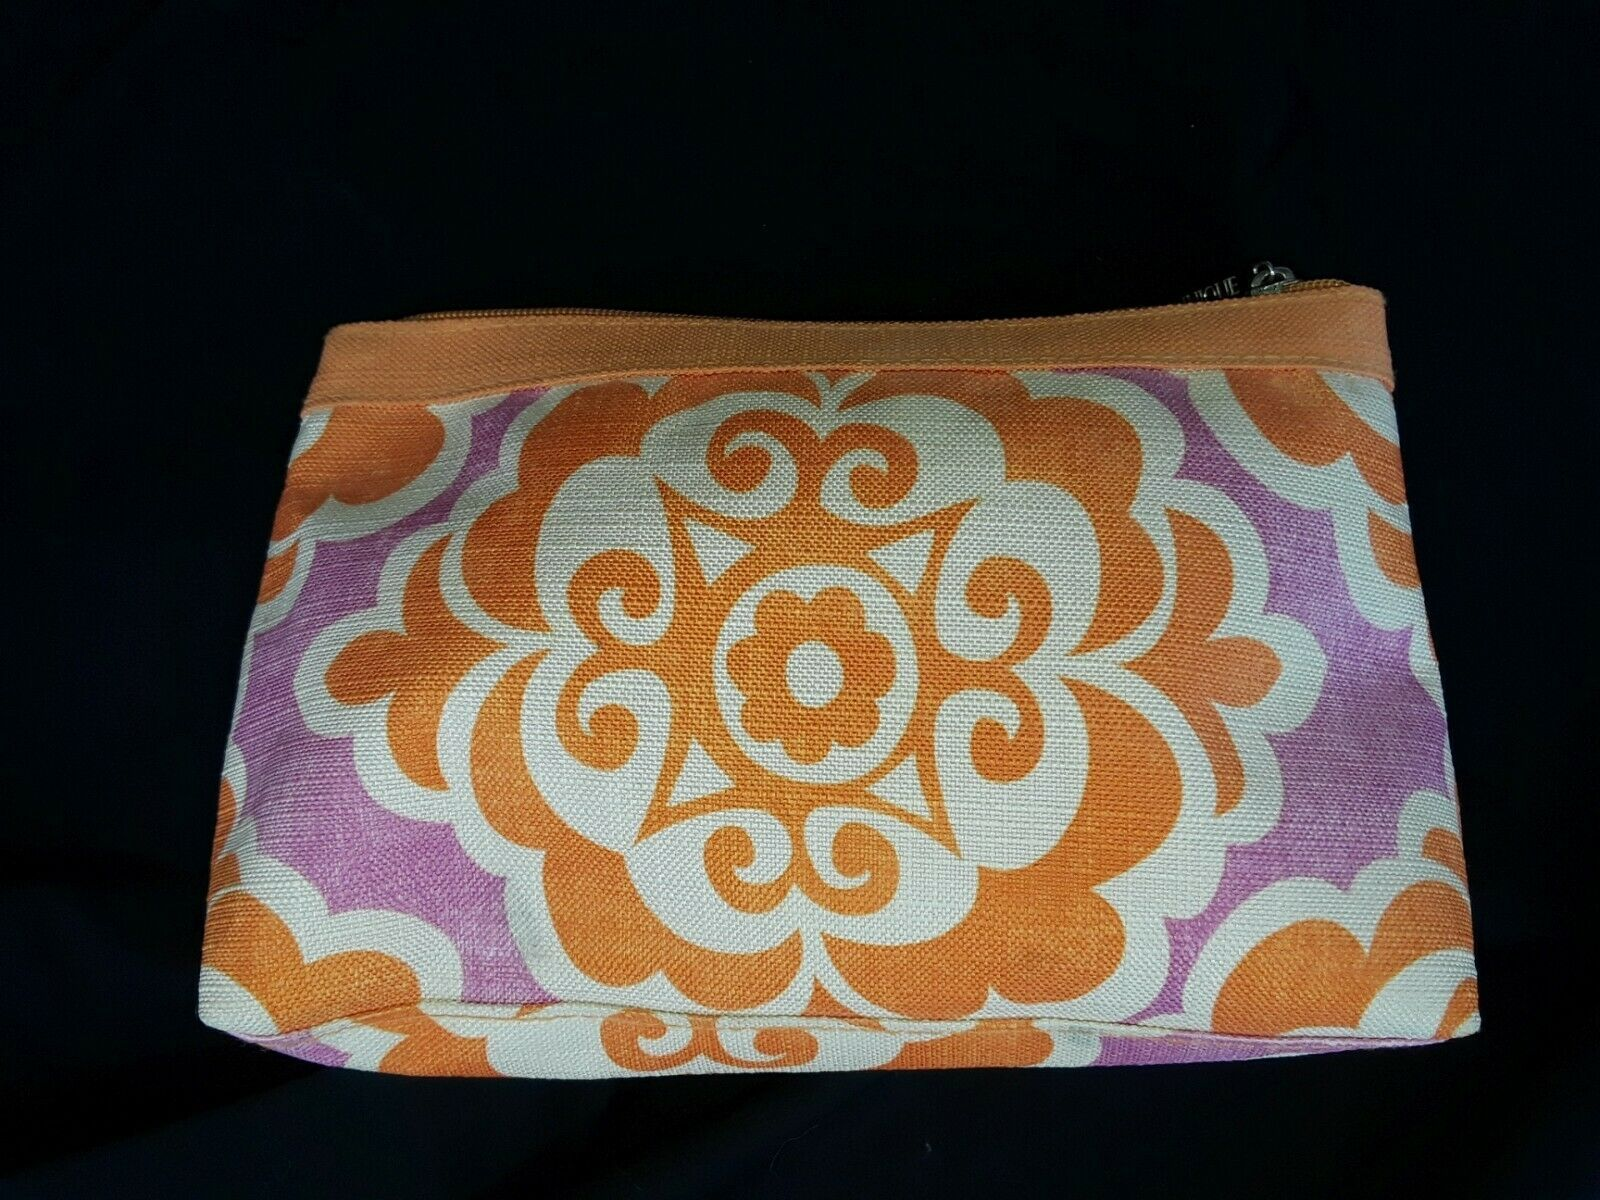 Primary image for Clinique makeup travel bag orange purple and white zipper close